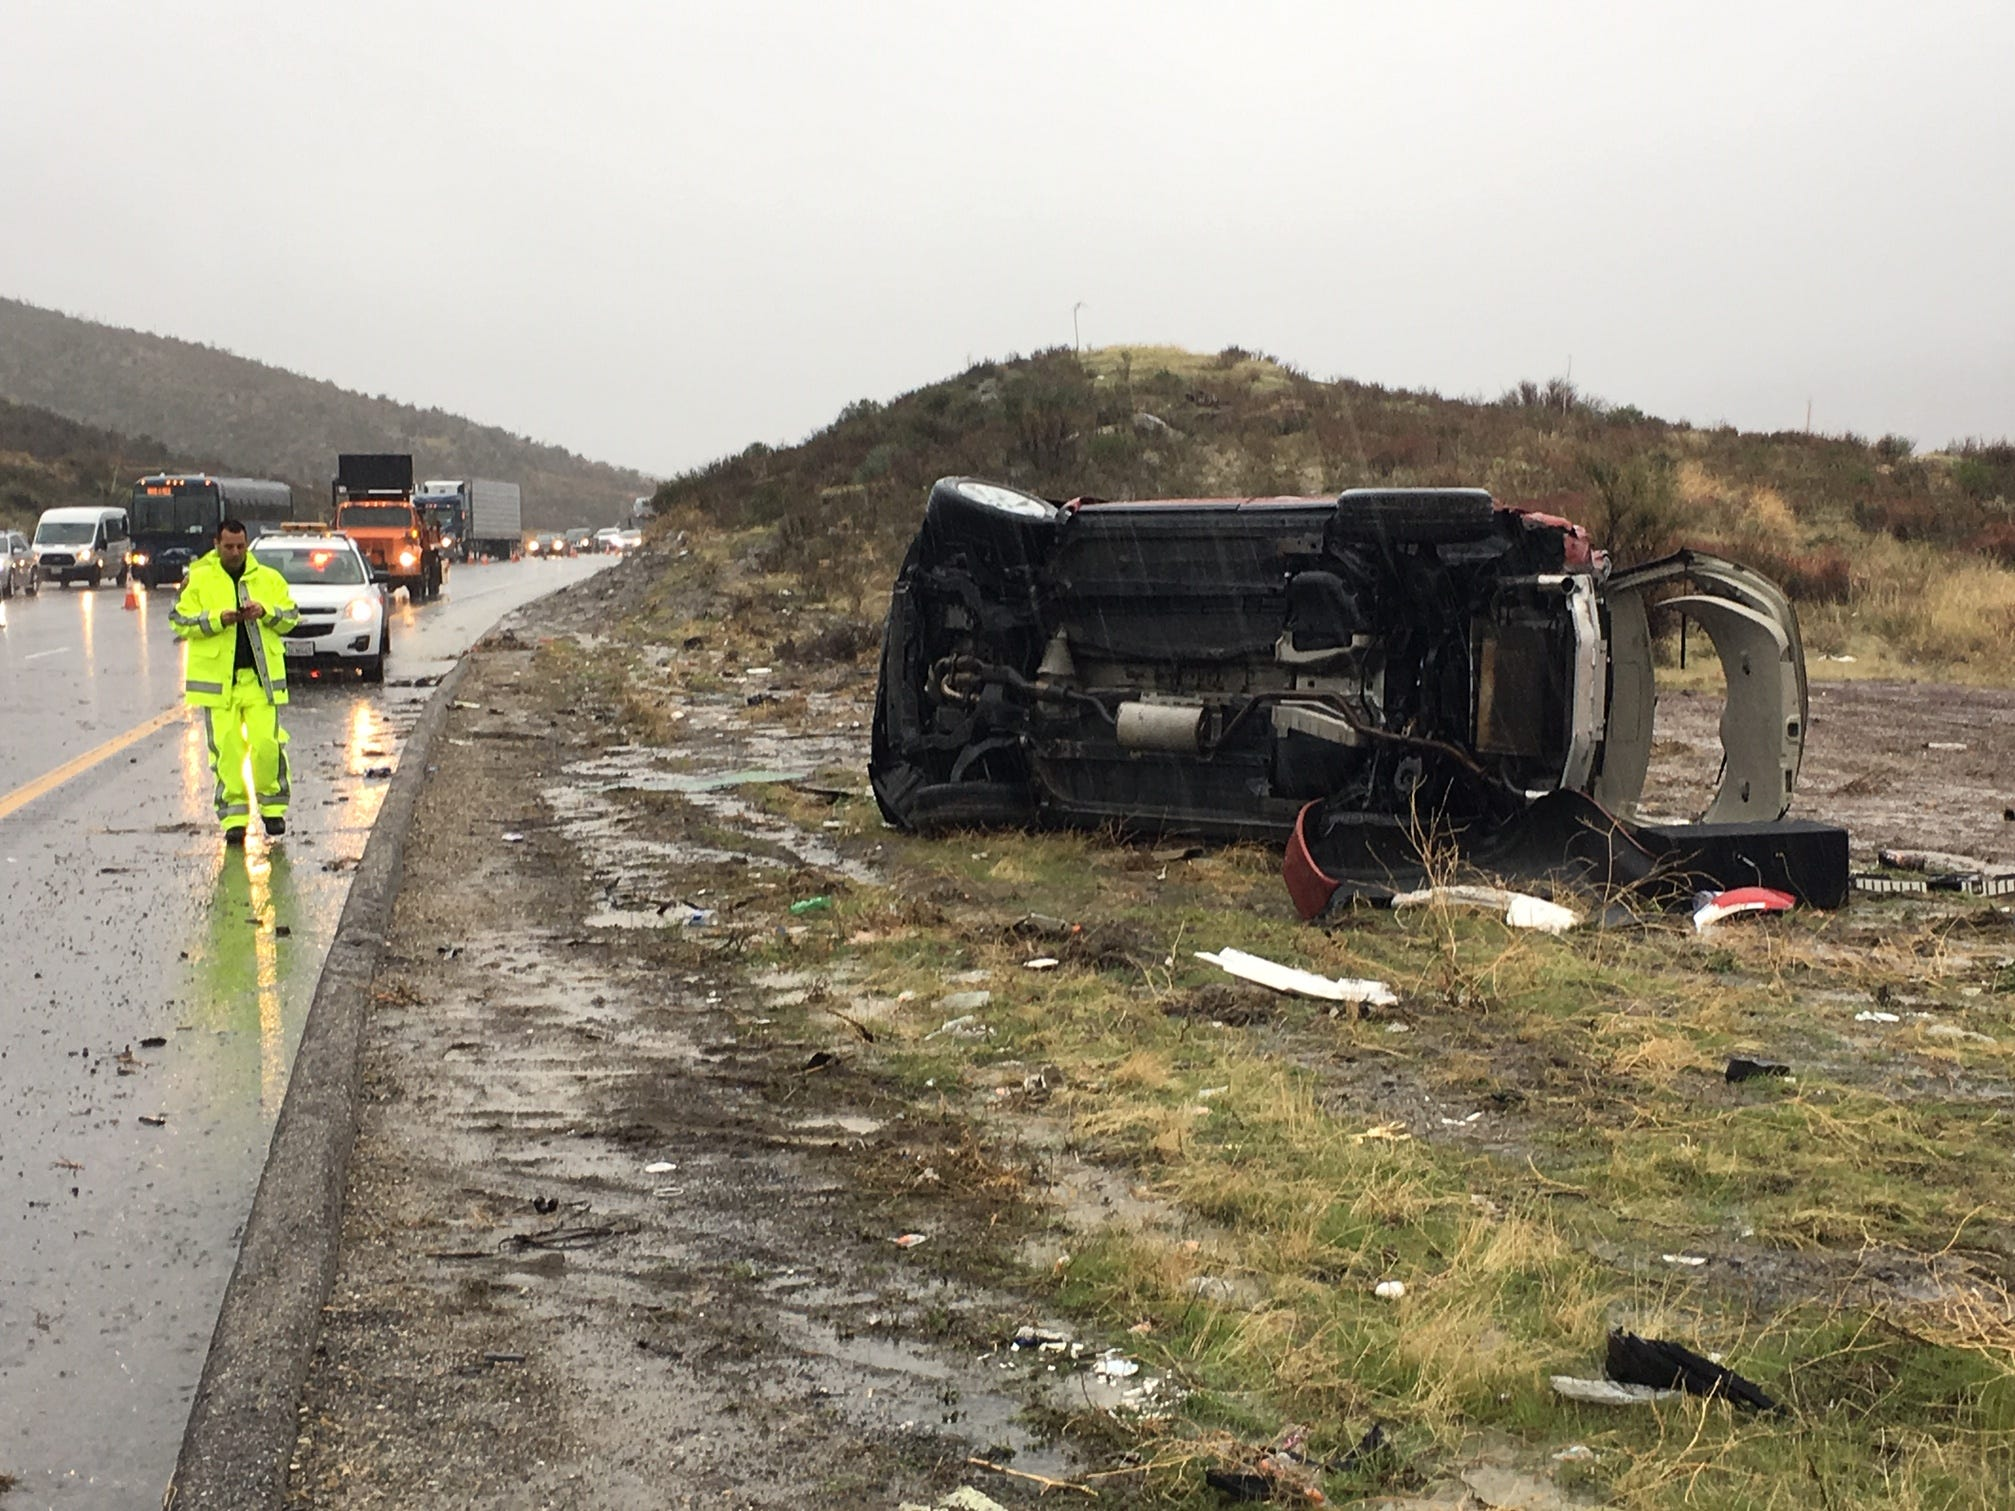 Members of a Ventura County Sheriff's search and rescue team had stopped on Interstate 5 Saturday morning to help  out after this Nissan Murano rolled over. One team member was killed and three were injured when another driver lost control of his SUV and plowed into the group, authorities said.